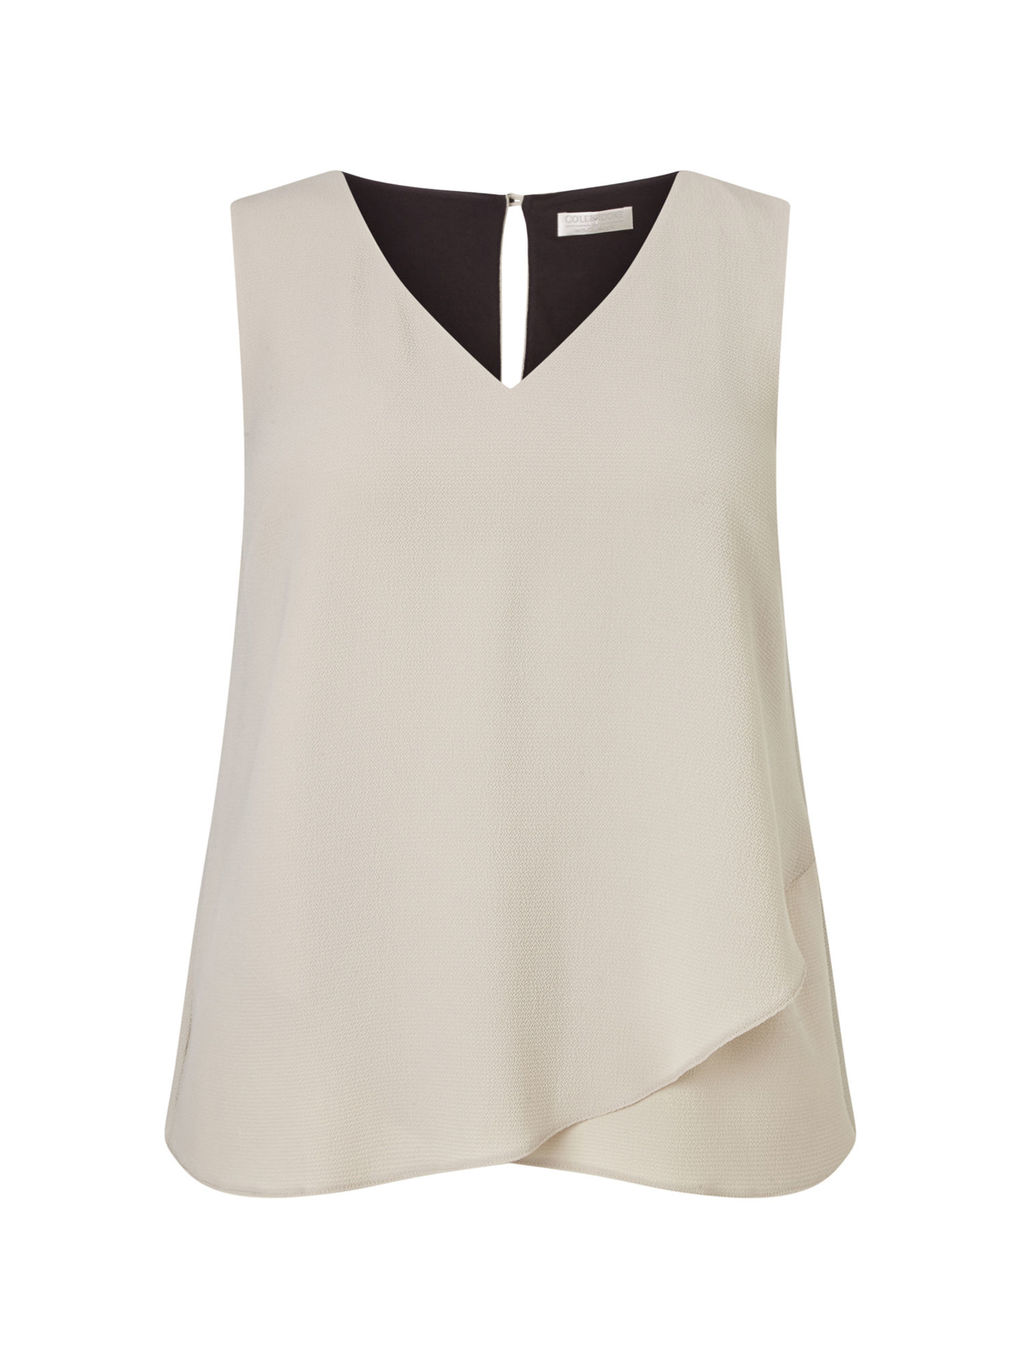 Layered Jersey Top, Mid Neutral - neckline: v-neck; pattern: plain; sleeve style: sleeveless; predominant colour: stone; length: standard; style: top; fibres: polyester/polyamide - stretch; fit: body skimming; back detail: keyhole/peephole detail at back; sleeve length: sleeveless; texture group: crepes; pattern type: fabric; occasions: creative work; season: s/s 2016; wardrobe: basic